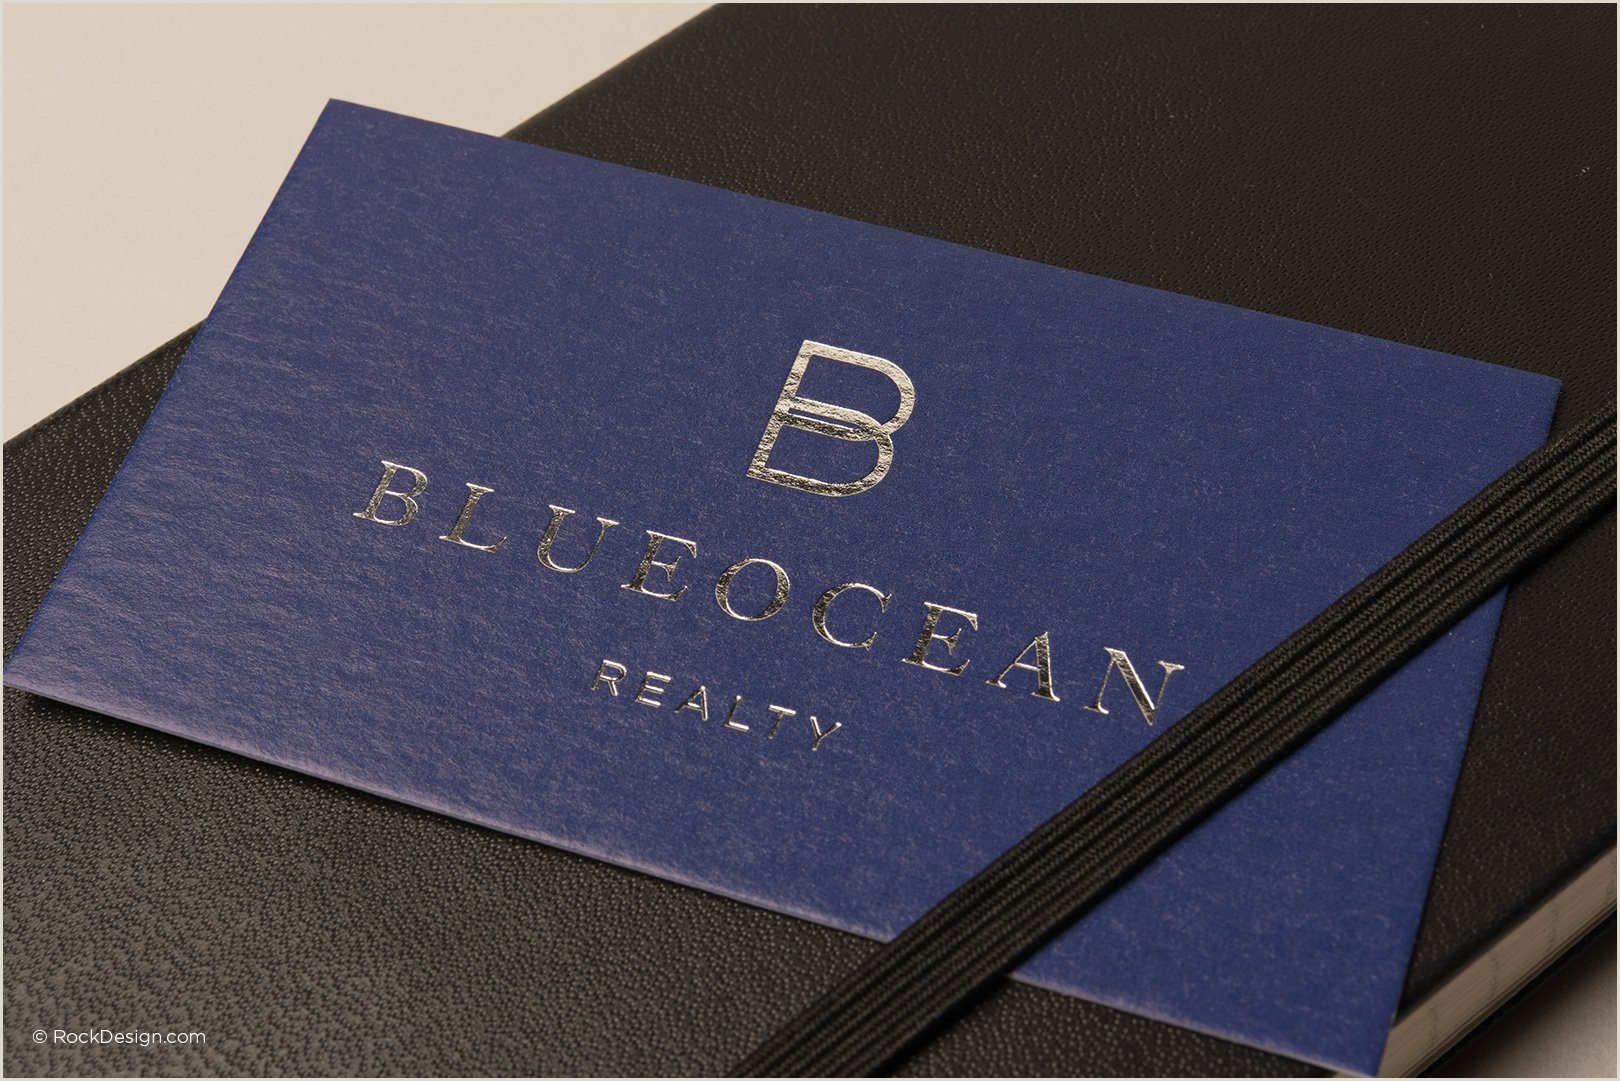 Unique Realtor Business Cards Print Realtor Business Cards Online Today